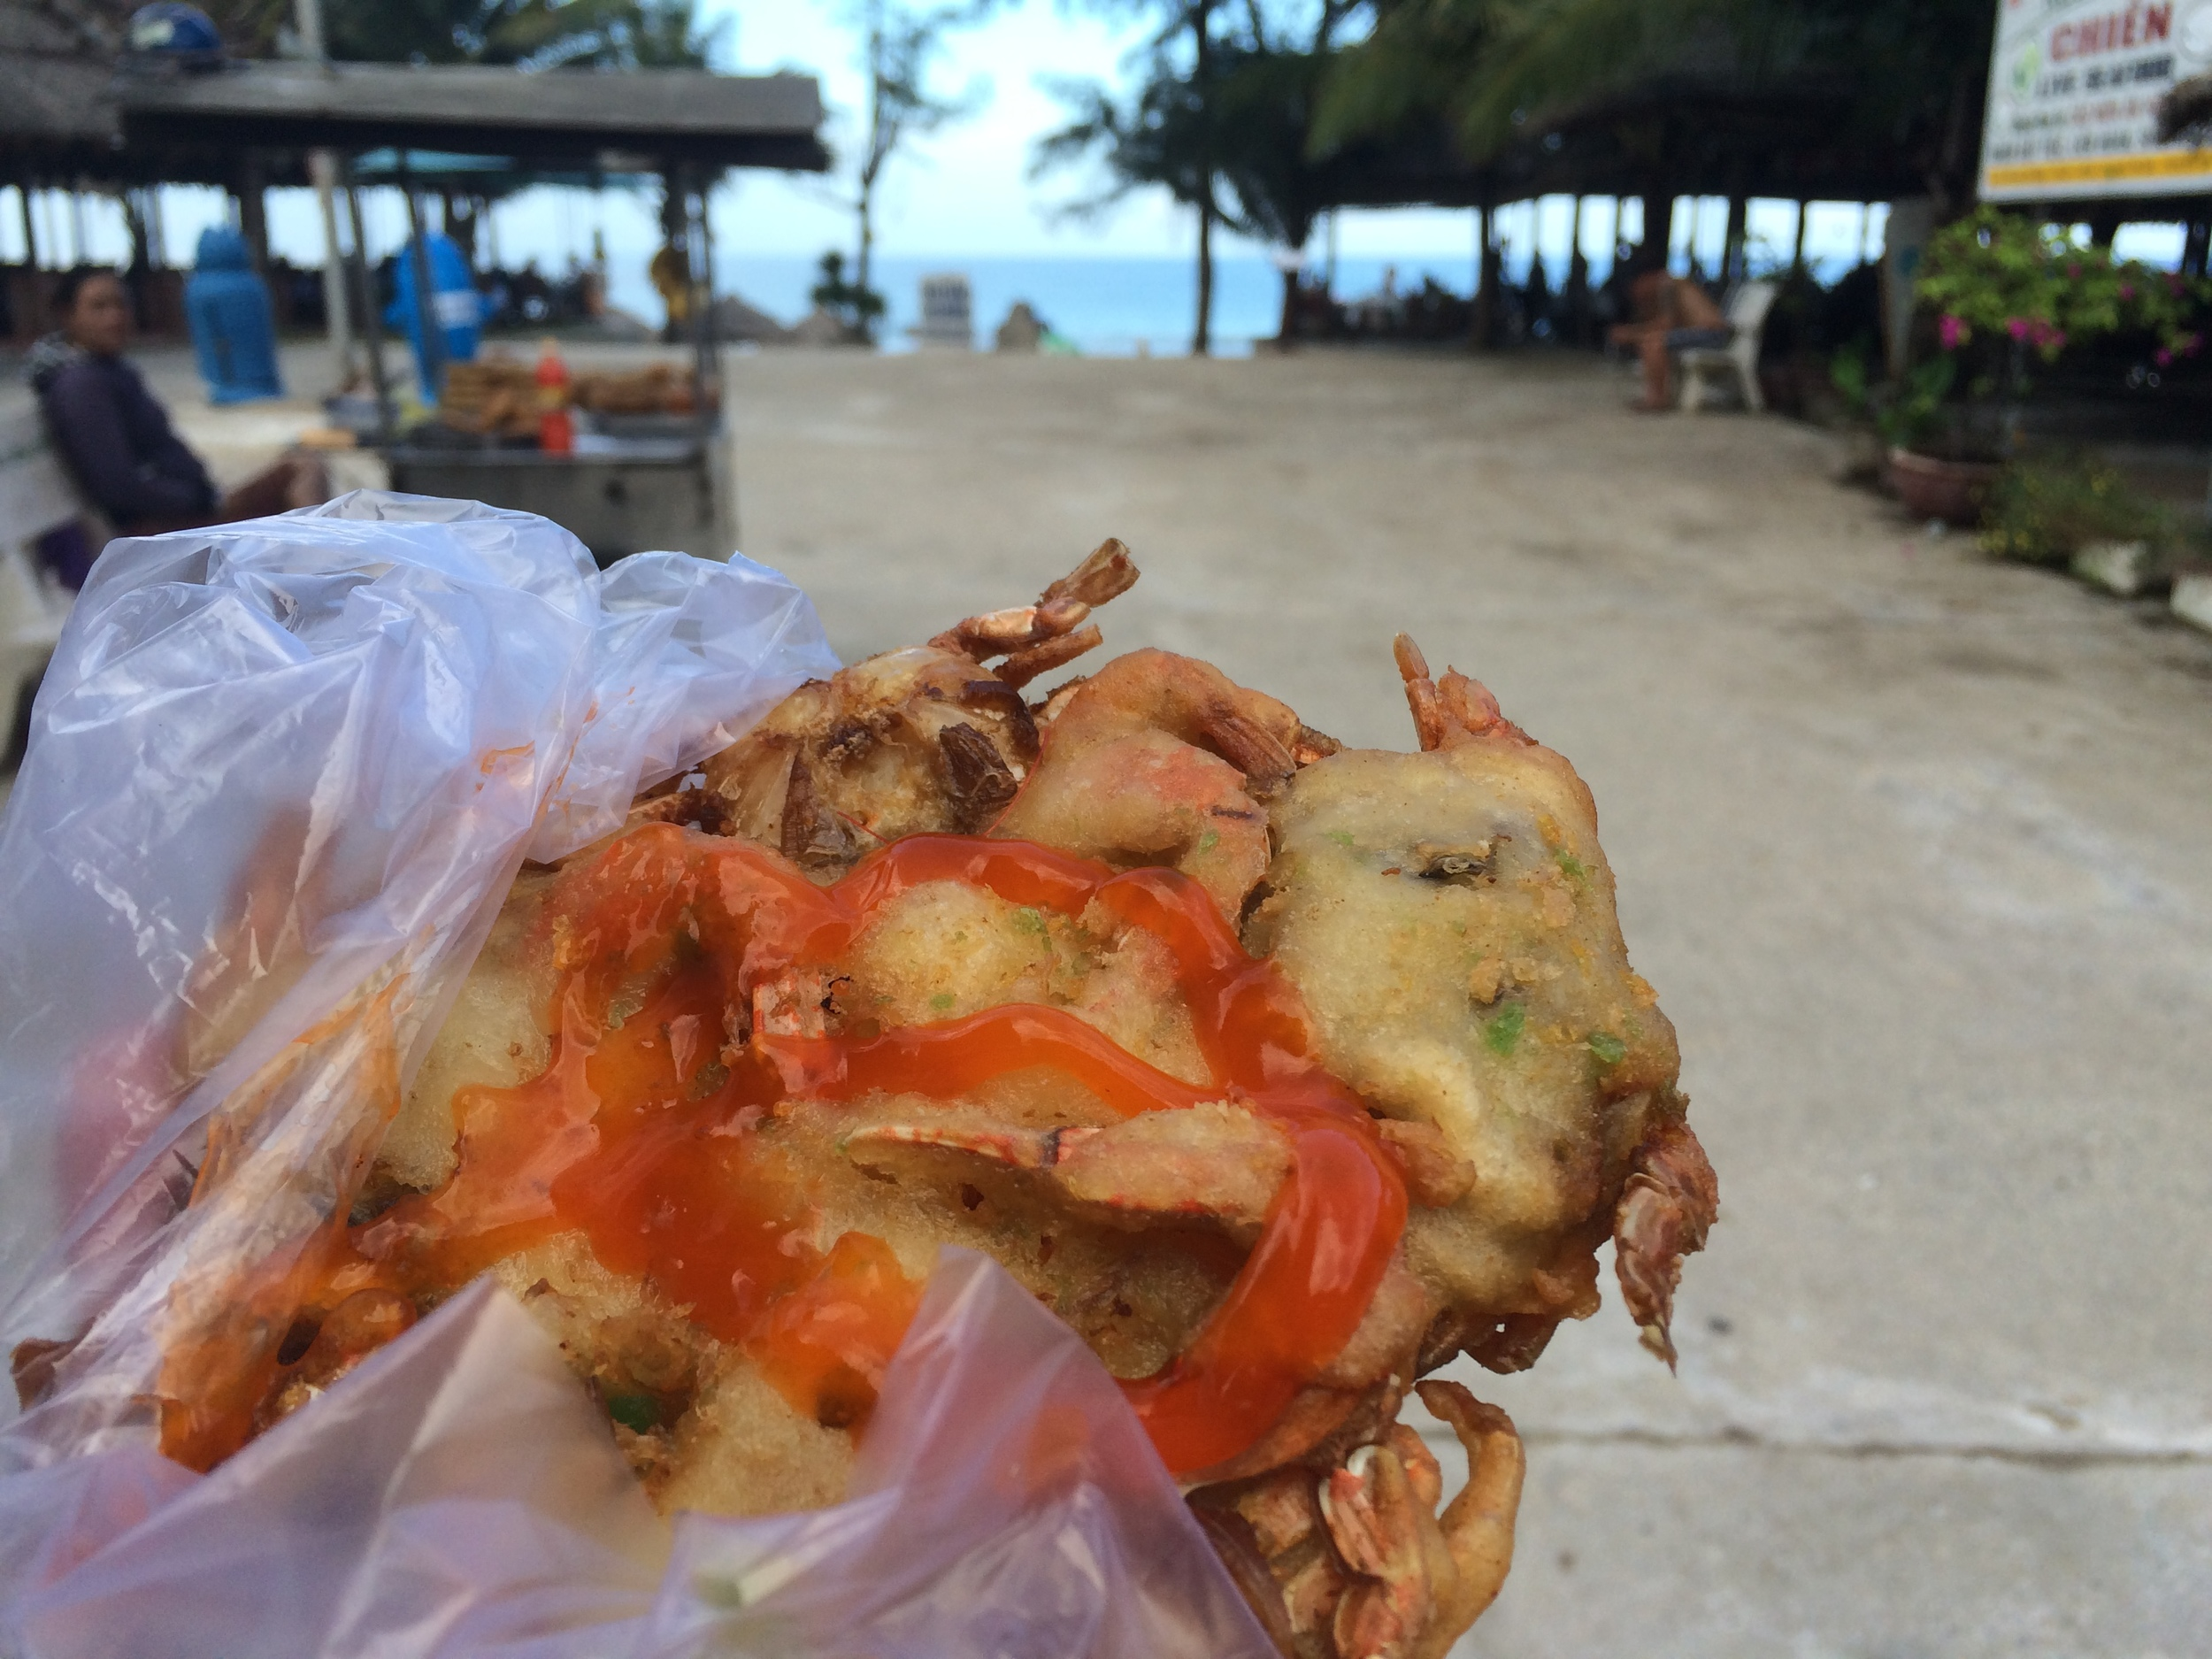 Deep fried crab pancake... you can see an entire crab on the right, + claws